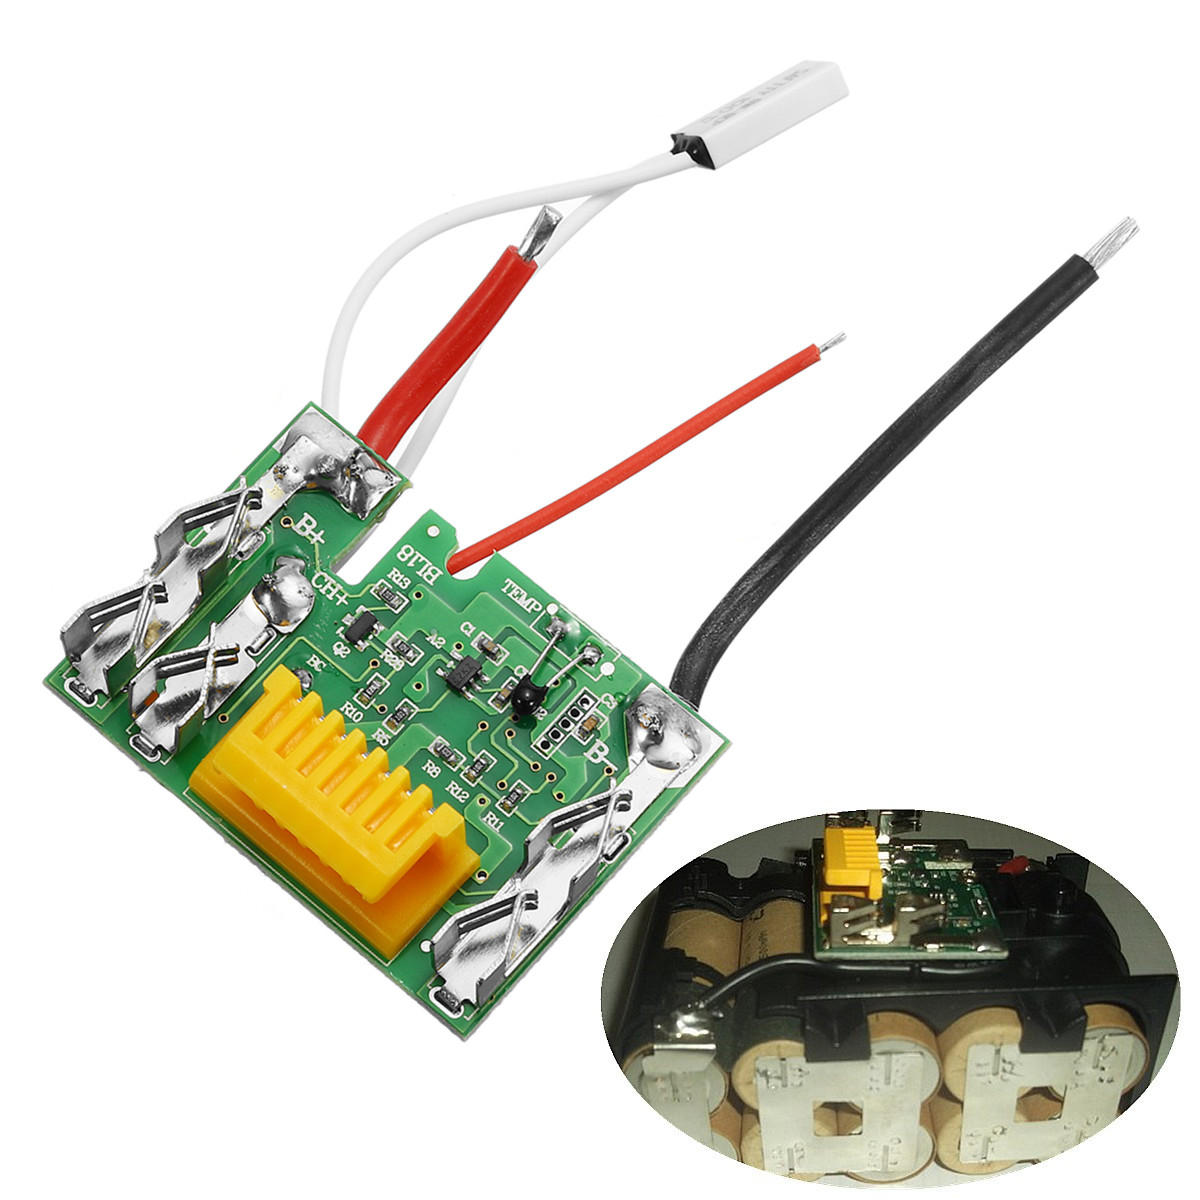 18v Li Ion Battery Protection Circuit Module Board For Makita Drill How To Read Electronic Diagrams Tab Hobby Electronics Series